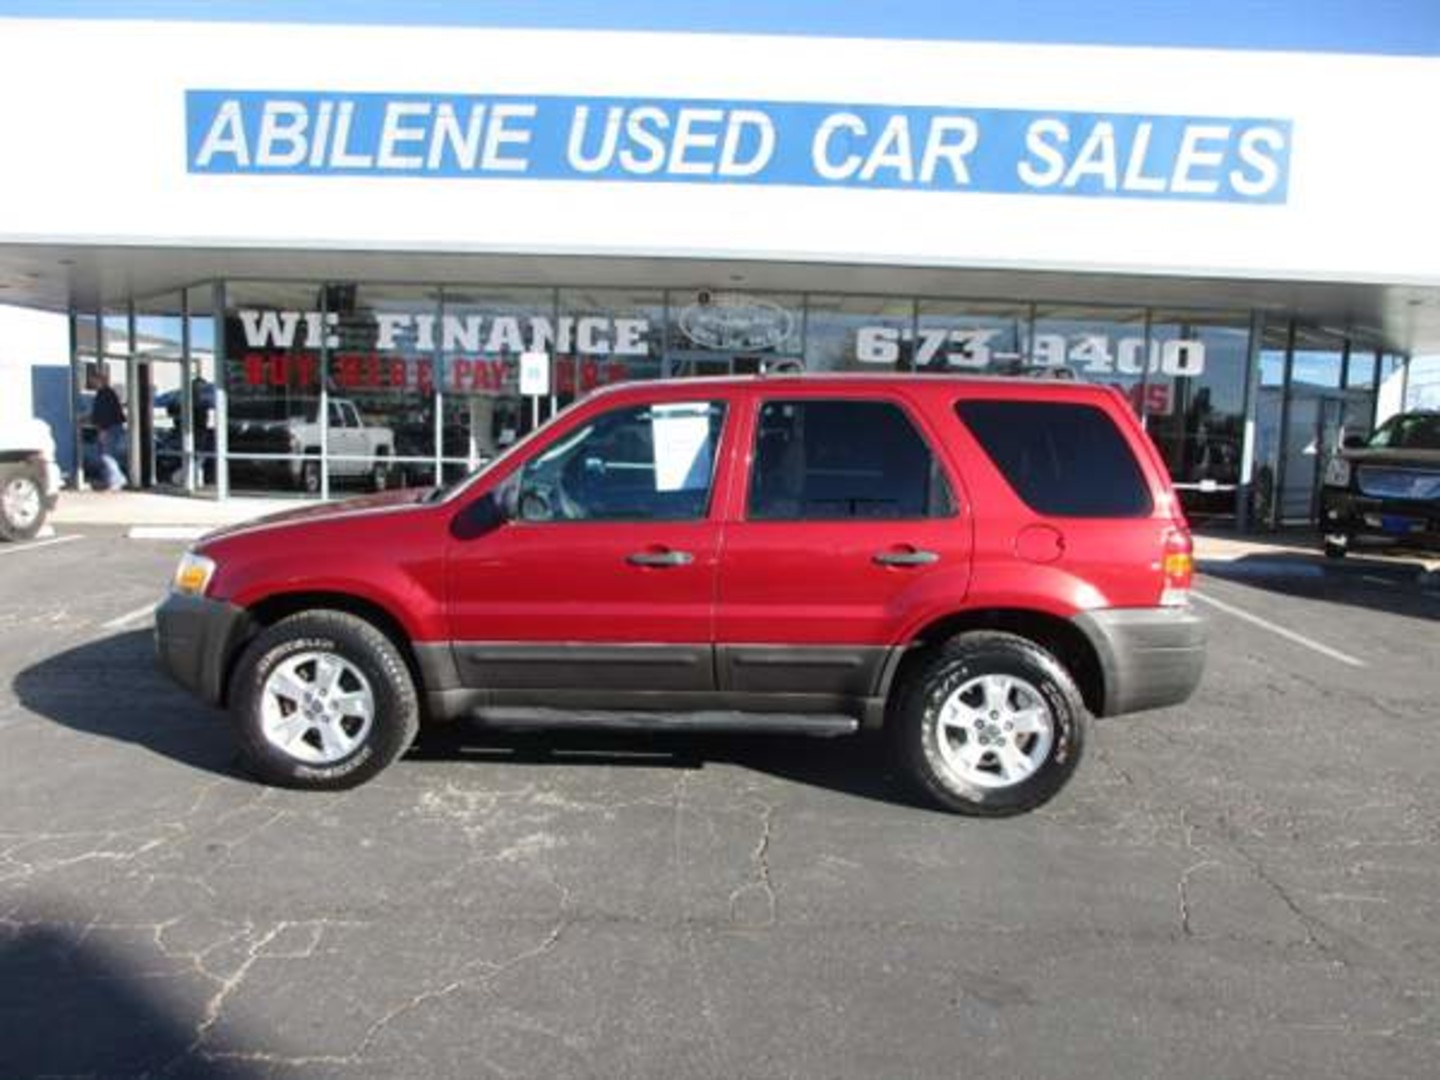 Melendez Auto Sales >> 2007 Ford Escape XLT Sport Abilene TX Abilene Used Car Sales